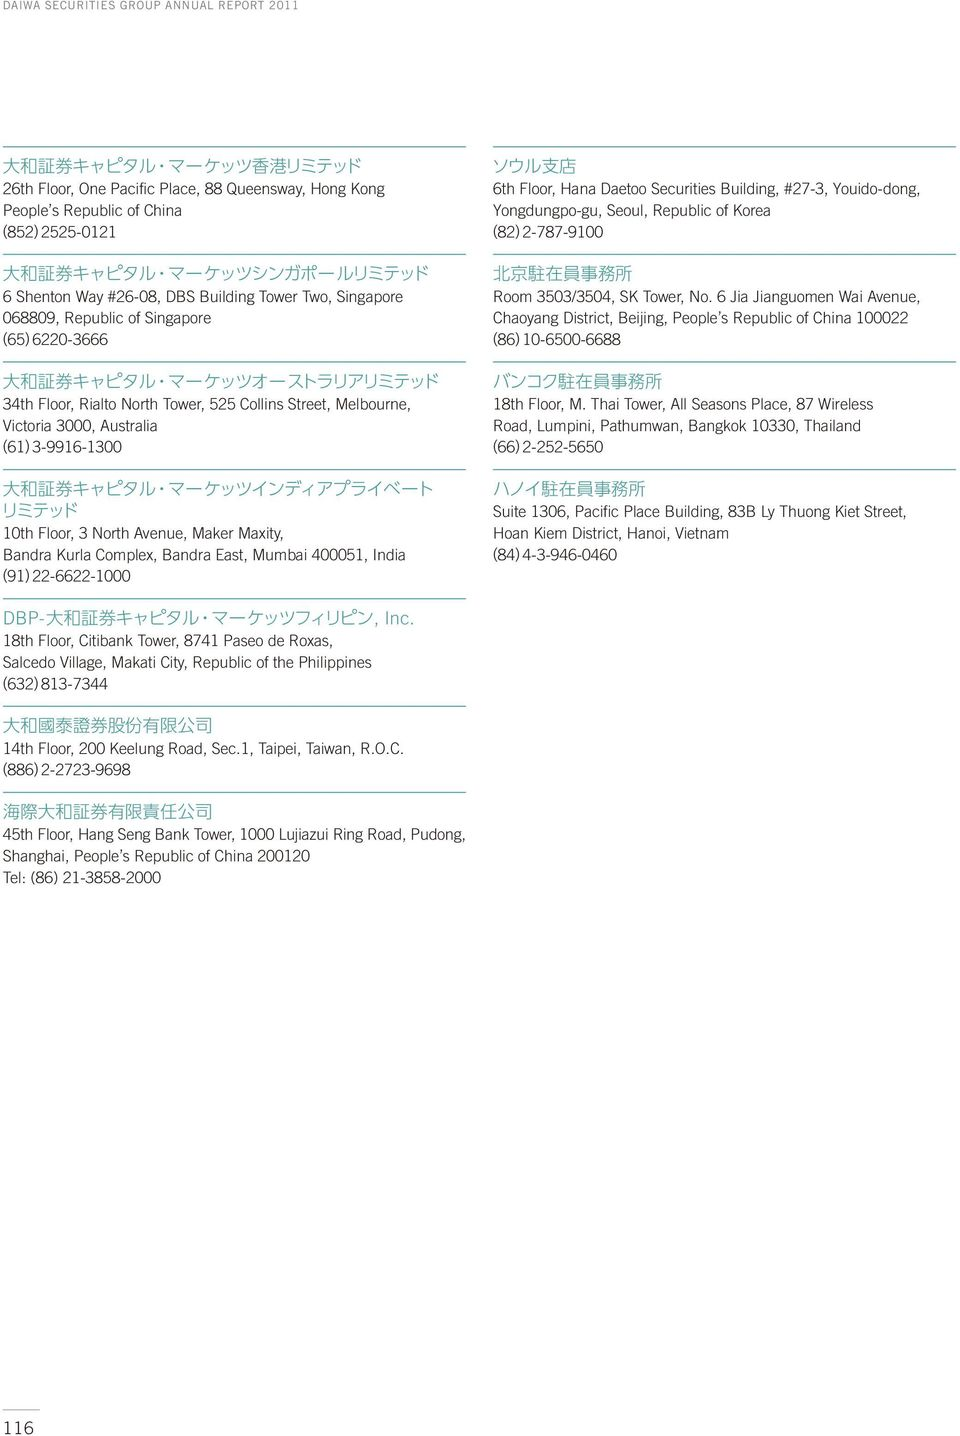 22-6622-1000 6th Floor, Hana Daetoo Securities Building, #27-3, Youido-dong, Yongdungpo-gu, Seoul, Republic of Korea 82 2-787-9100 Room 3503/3504, SK Tower, No.